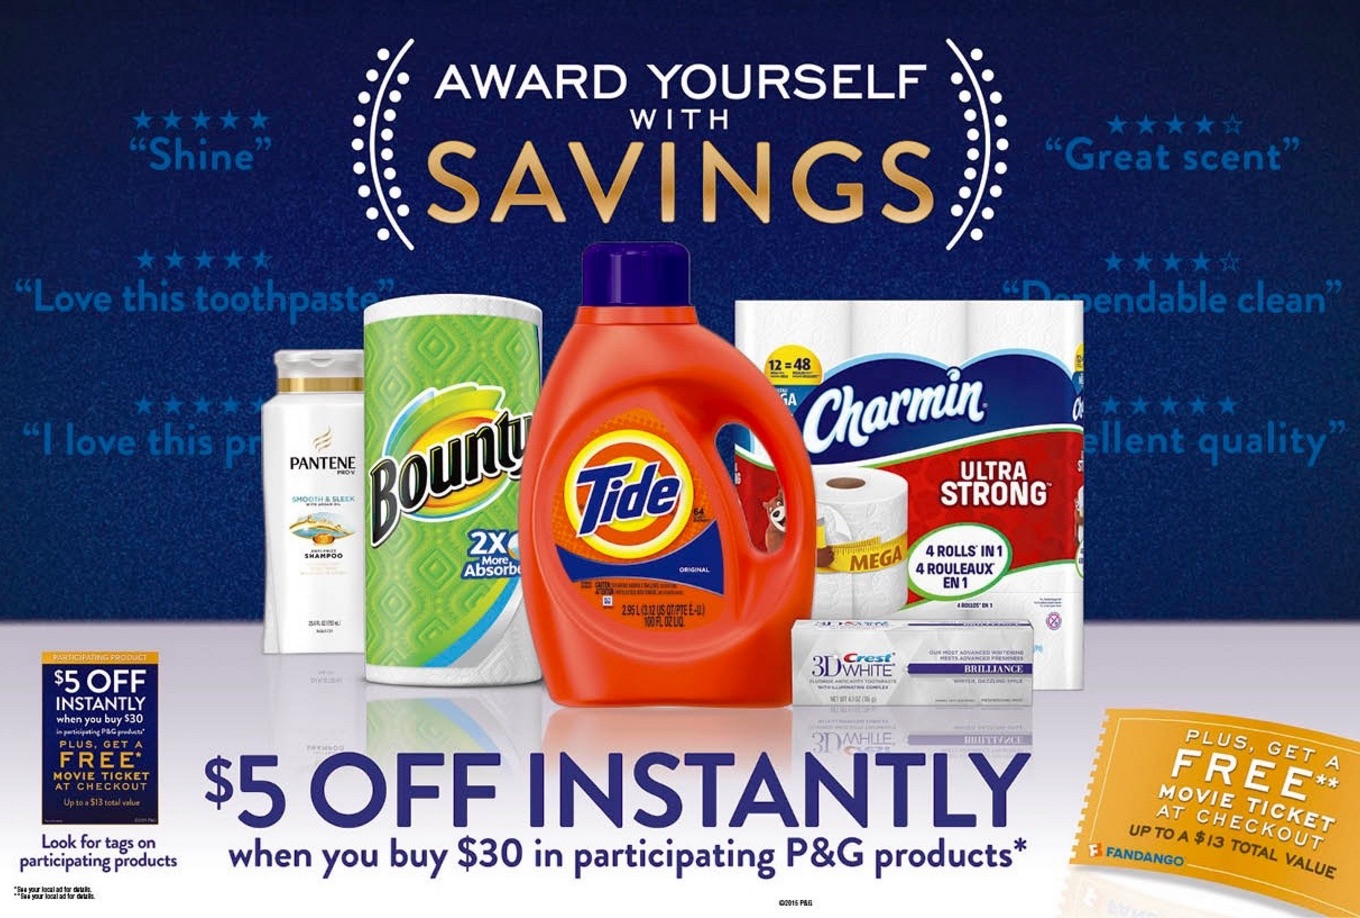 #AwardWithSavings #Vons #Savings #CollectiveBias #ad